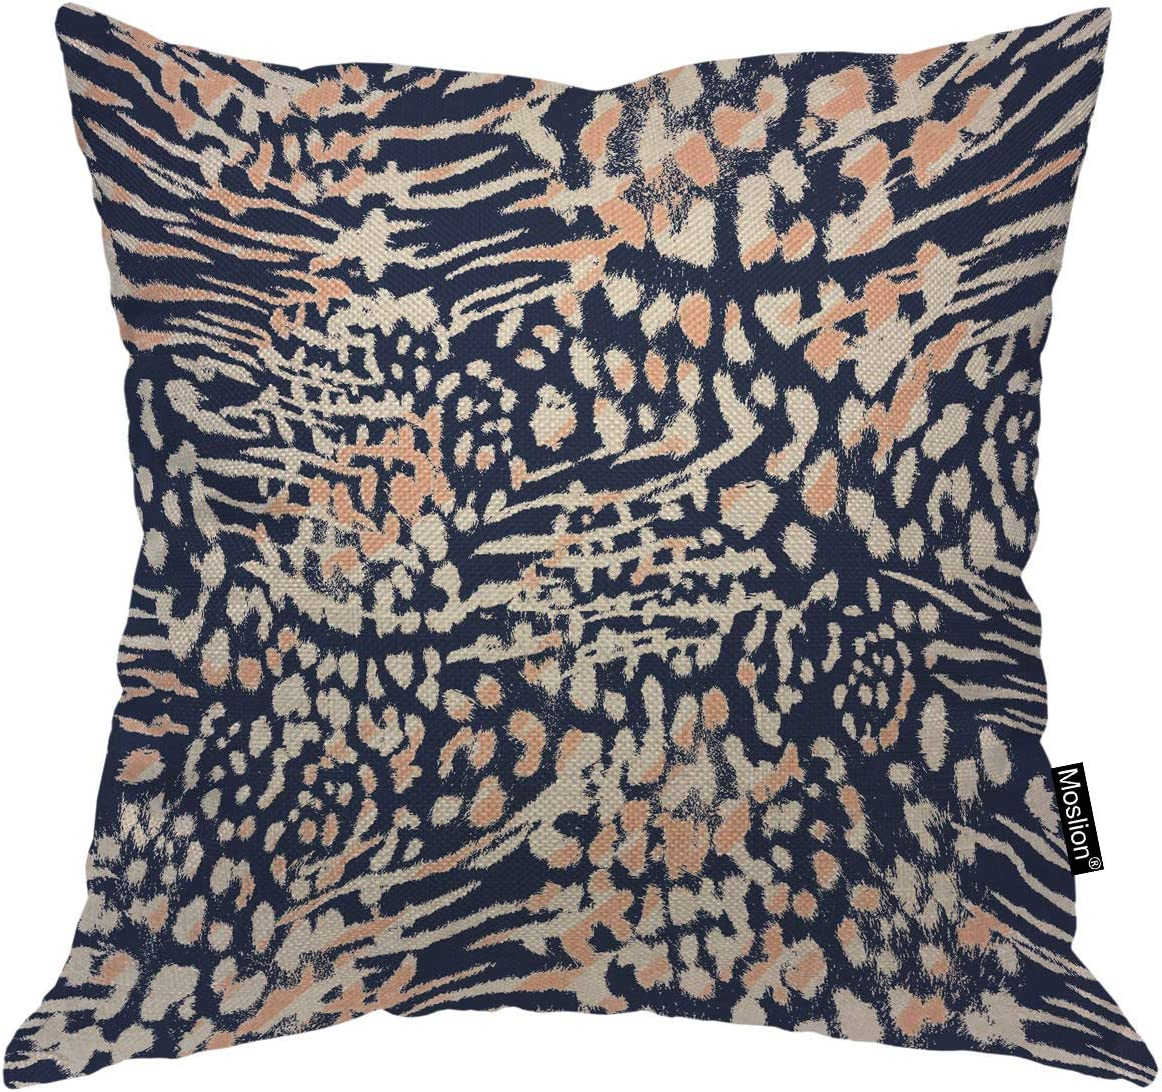 Moslion Limited time cheap sale Leopard Max 69% OFF Decorative Pillow Covers Wild Inch 16x16 Nature